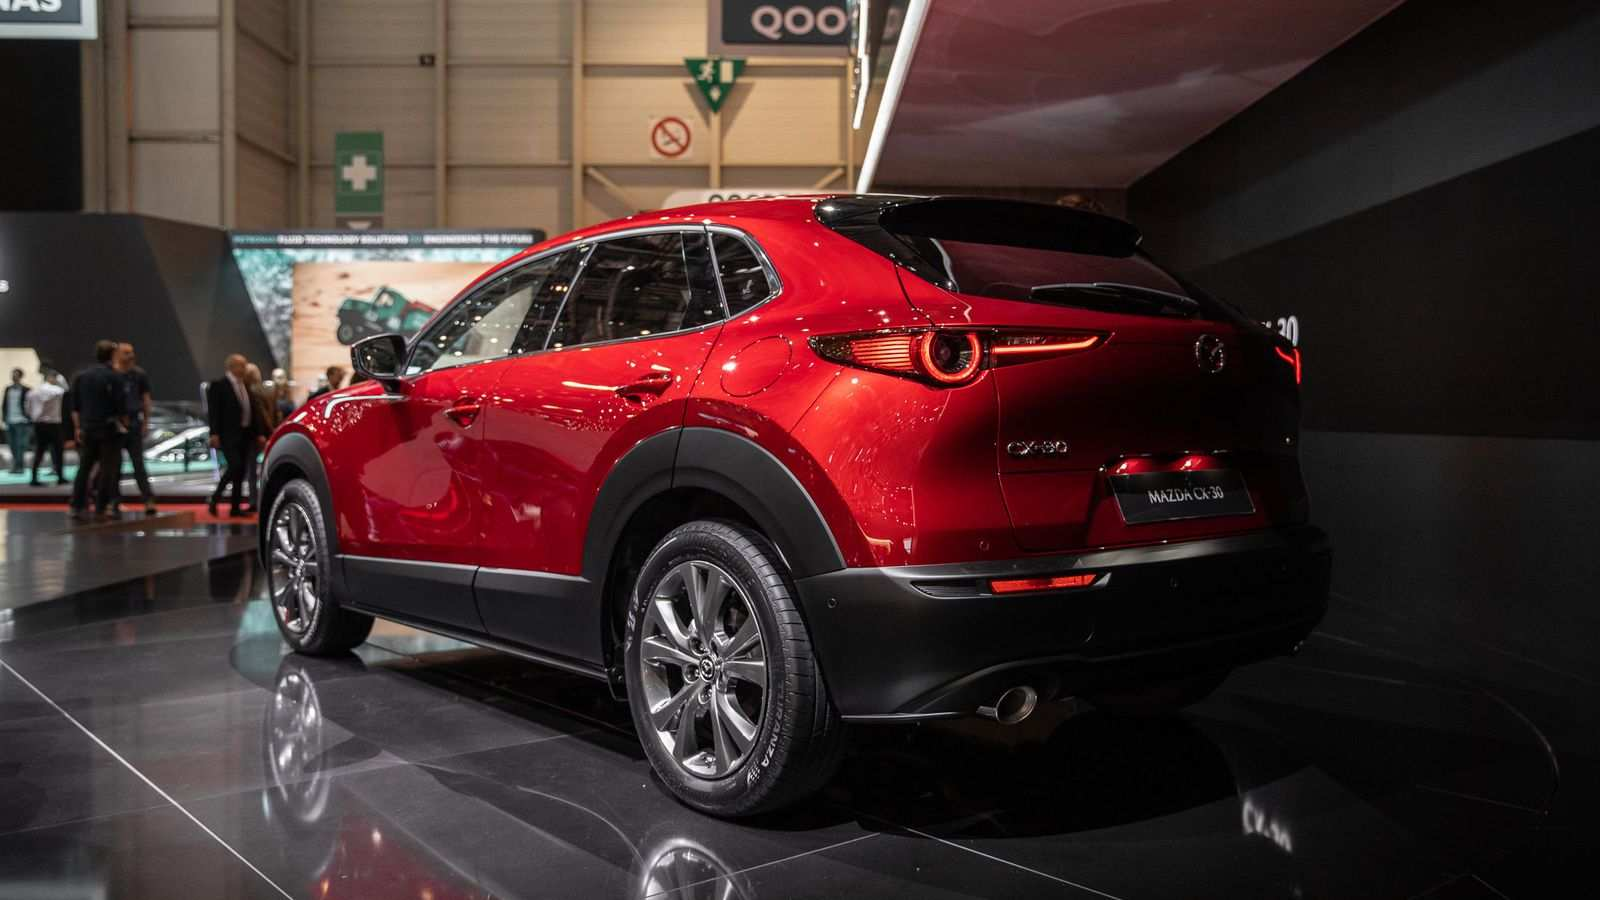 36 Best Review 2020 Mazda X30 New Review for 2020 Mazda X30